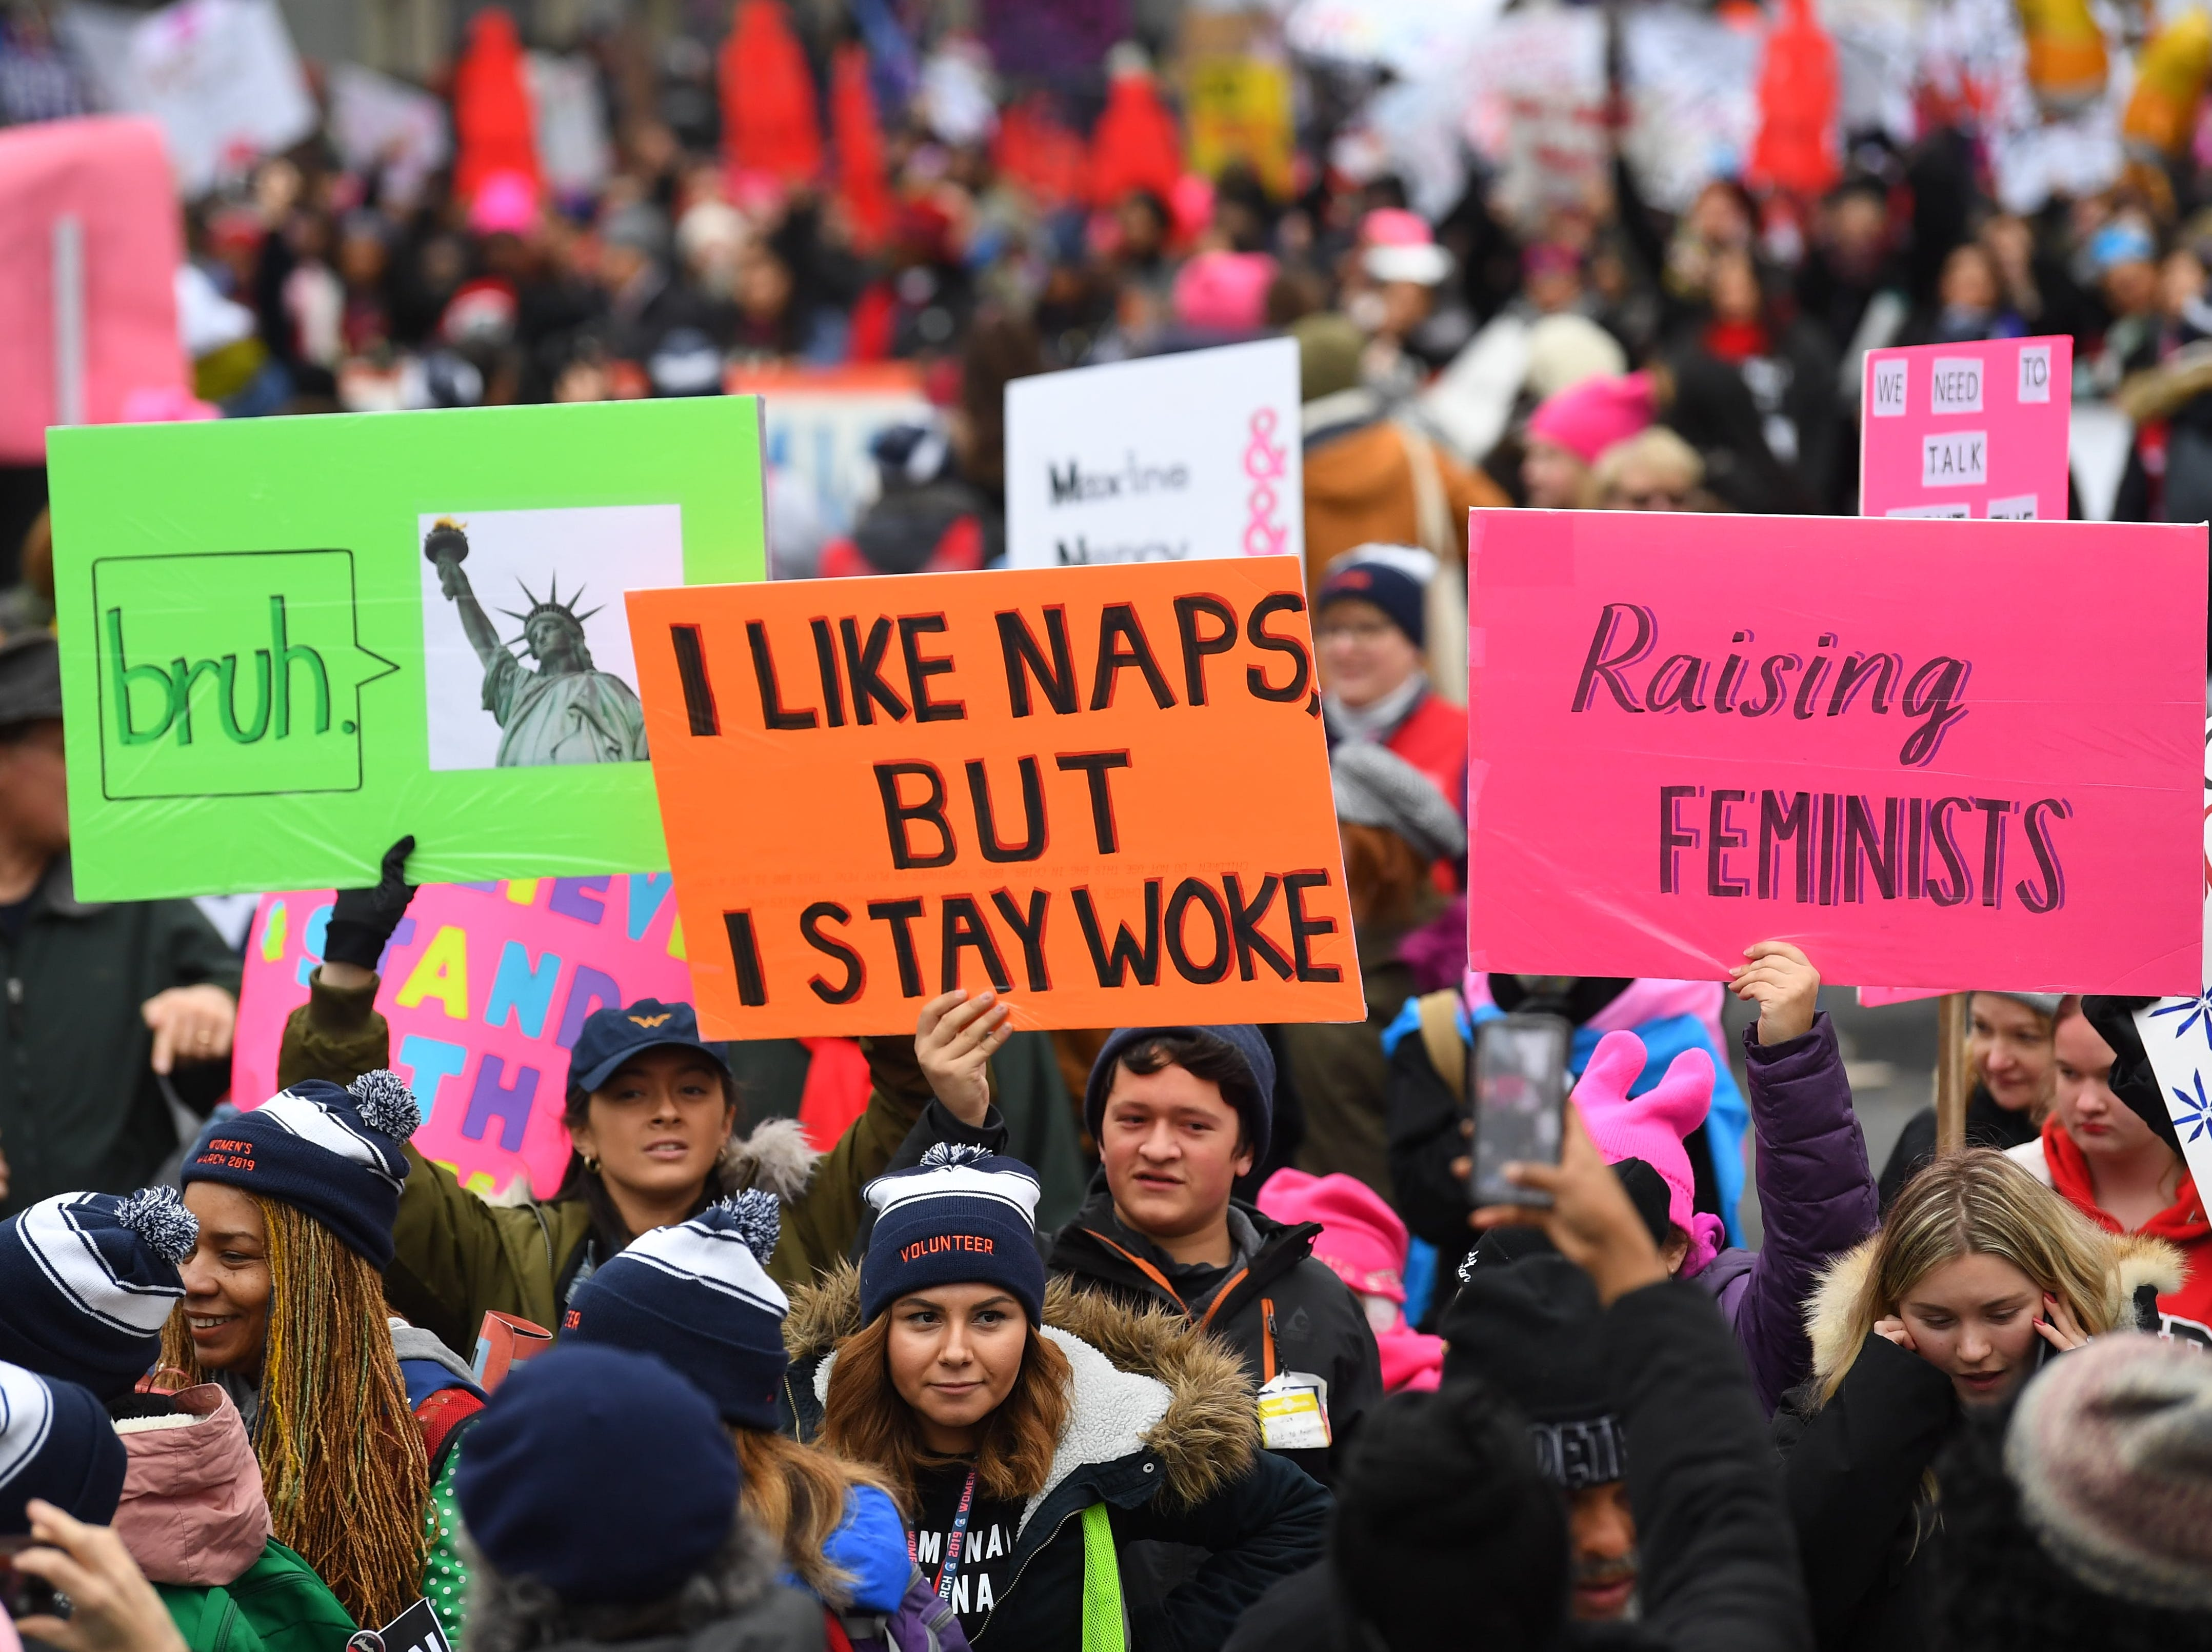 Demonstrations and rallies were held in Washington and at some 350 sites nationwide to display opposition to Trump, to demand an end to violence against women and to push for equality.